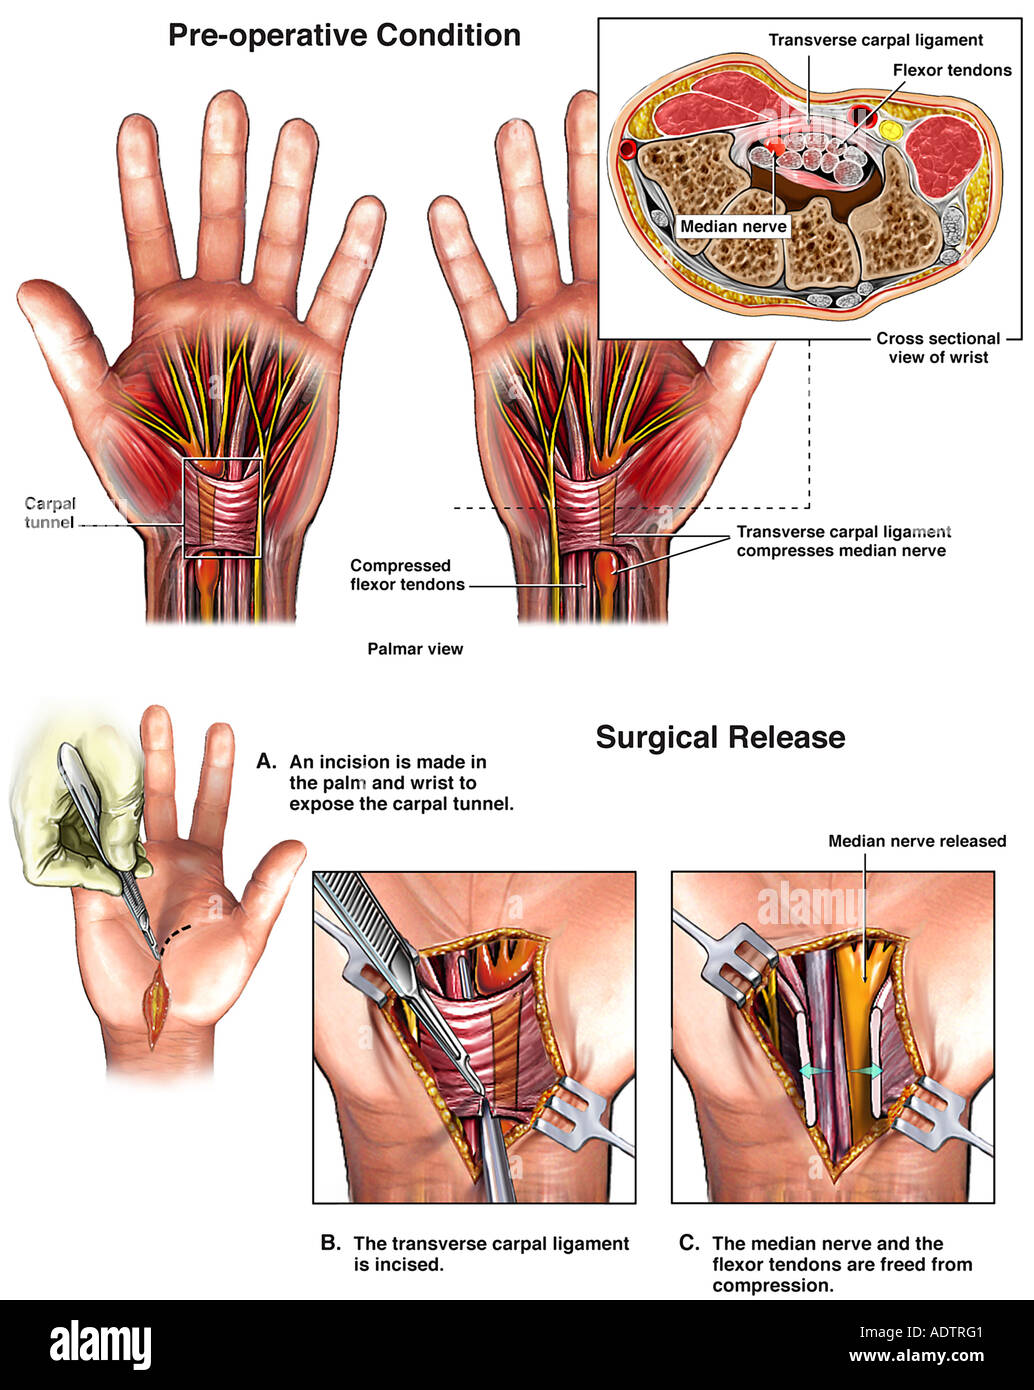 Transverse Carpal Ligament Stock Photos & Transverse Carpal Ligament ...